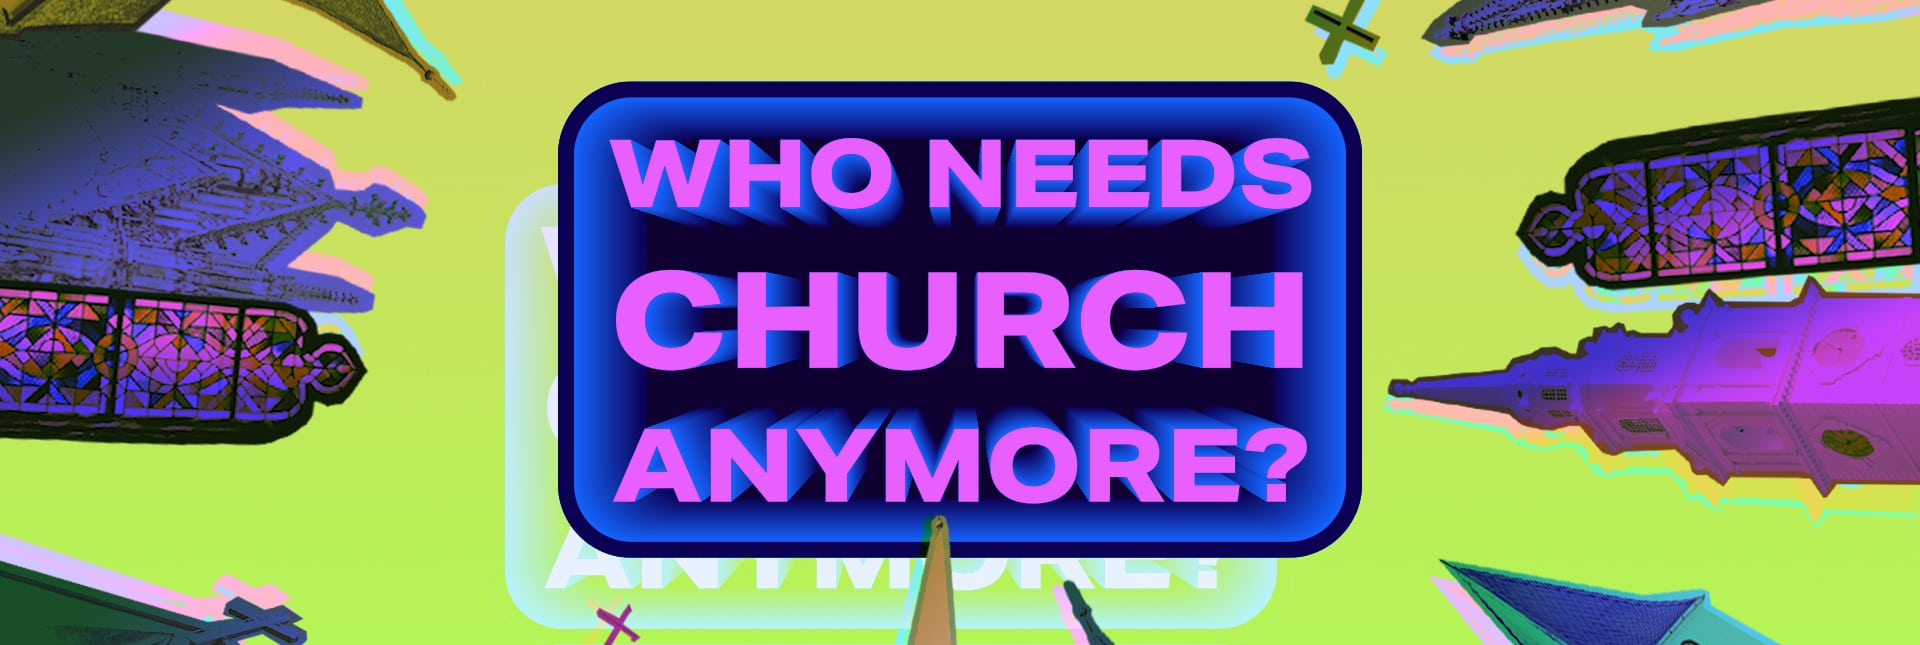 Who needs church anymore wide